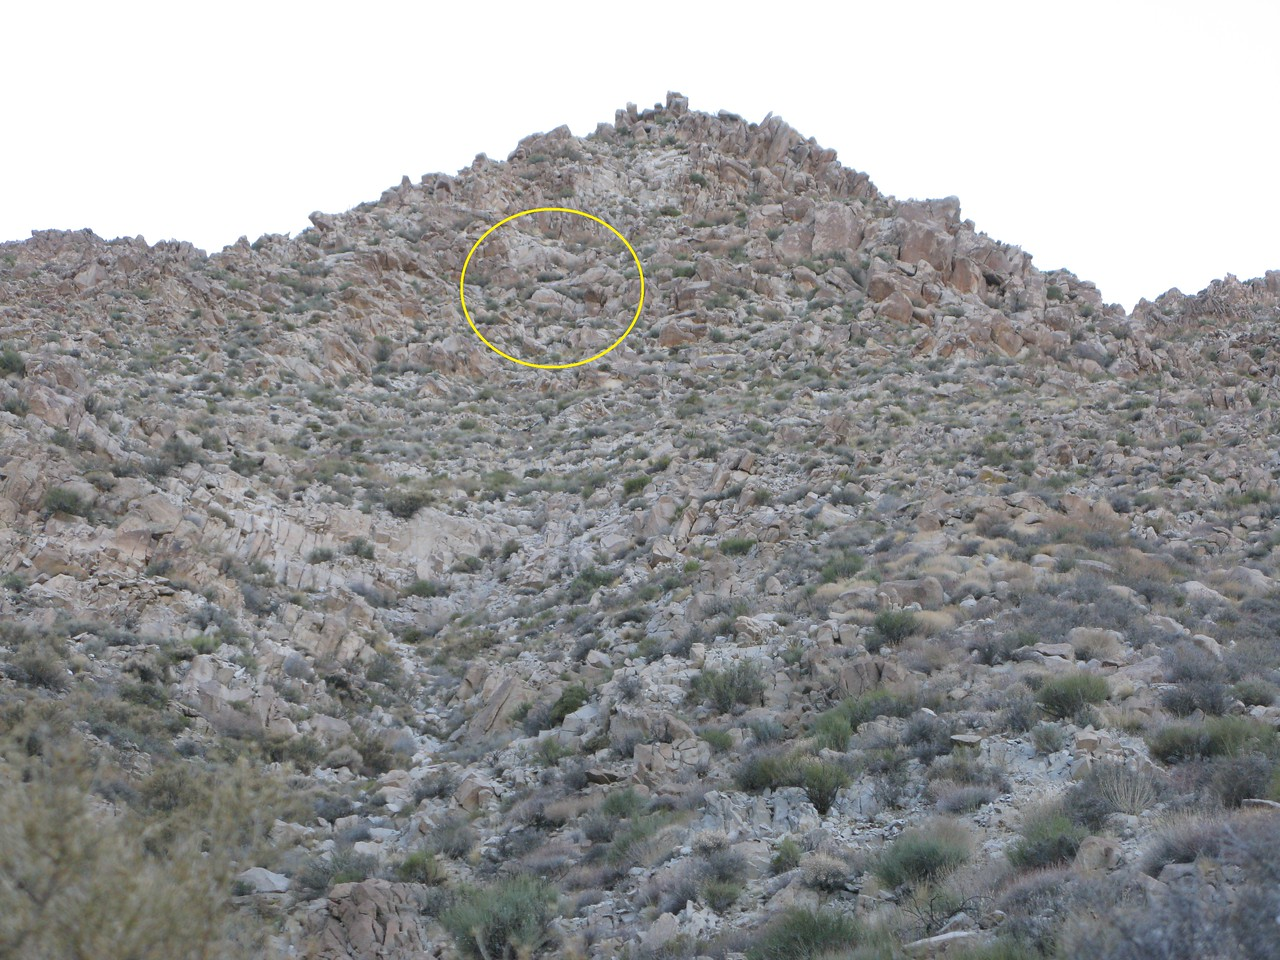 Small fragments of wreckage littered the site with many fragments concealed around and under boulders and rocks.<br /> <br /> The yellow circle illustrates the approximate location of the LVA50's point of impact (POI) several hundred feet above from where the first piece of wreckage was found.<br /> <br /> From this point on, the slope of the mountain begins to steepen to around 60-70 degrees. The terrain is so unstable that literally every rock I step on either slides or falls from under my feet.